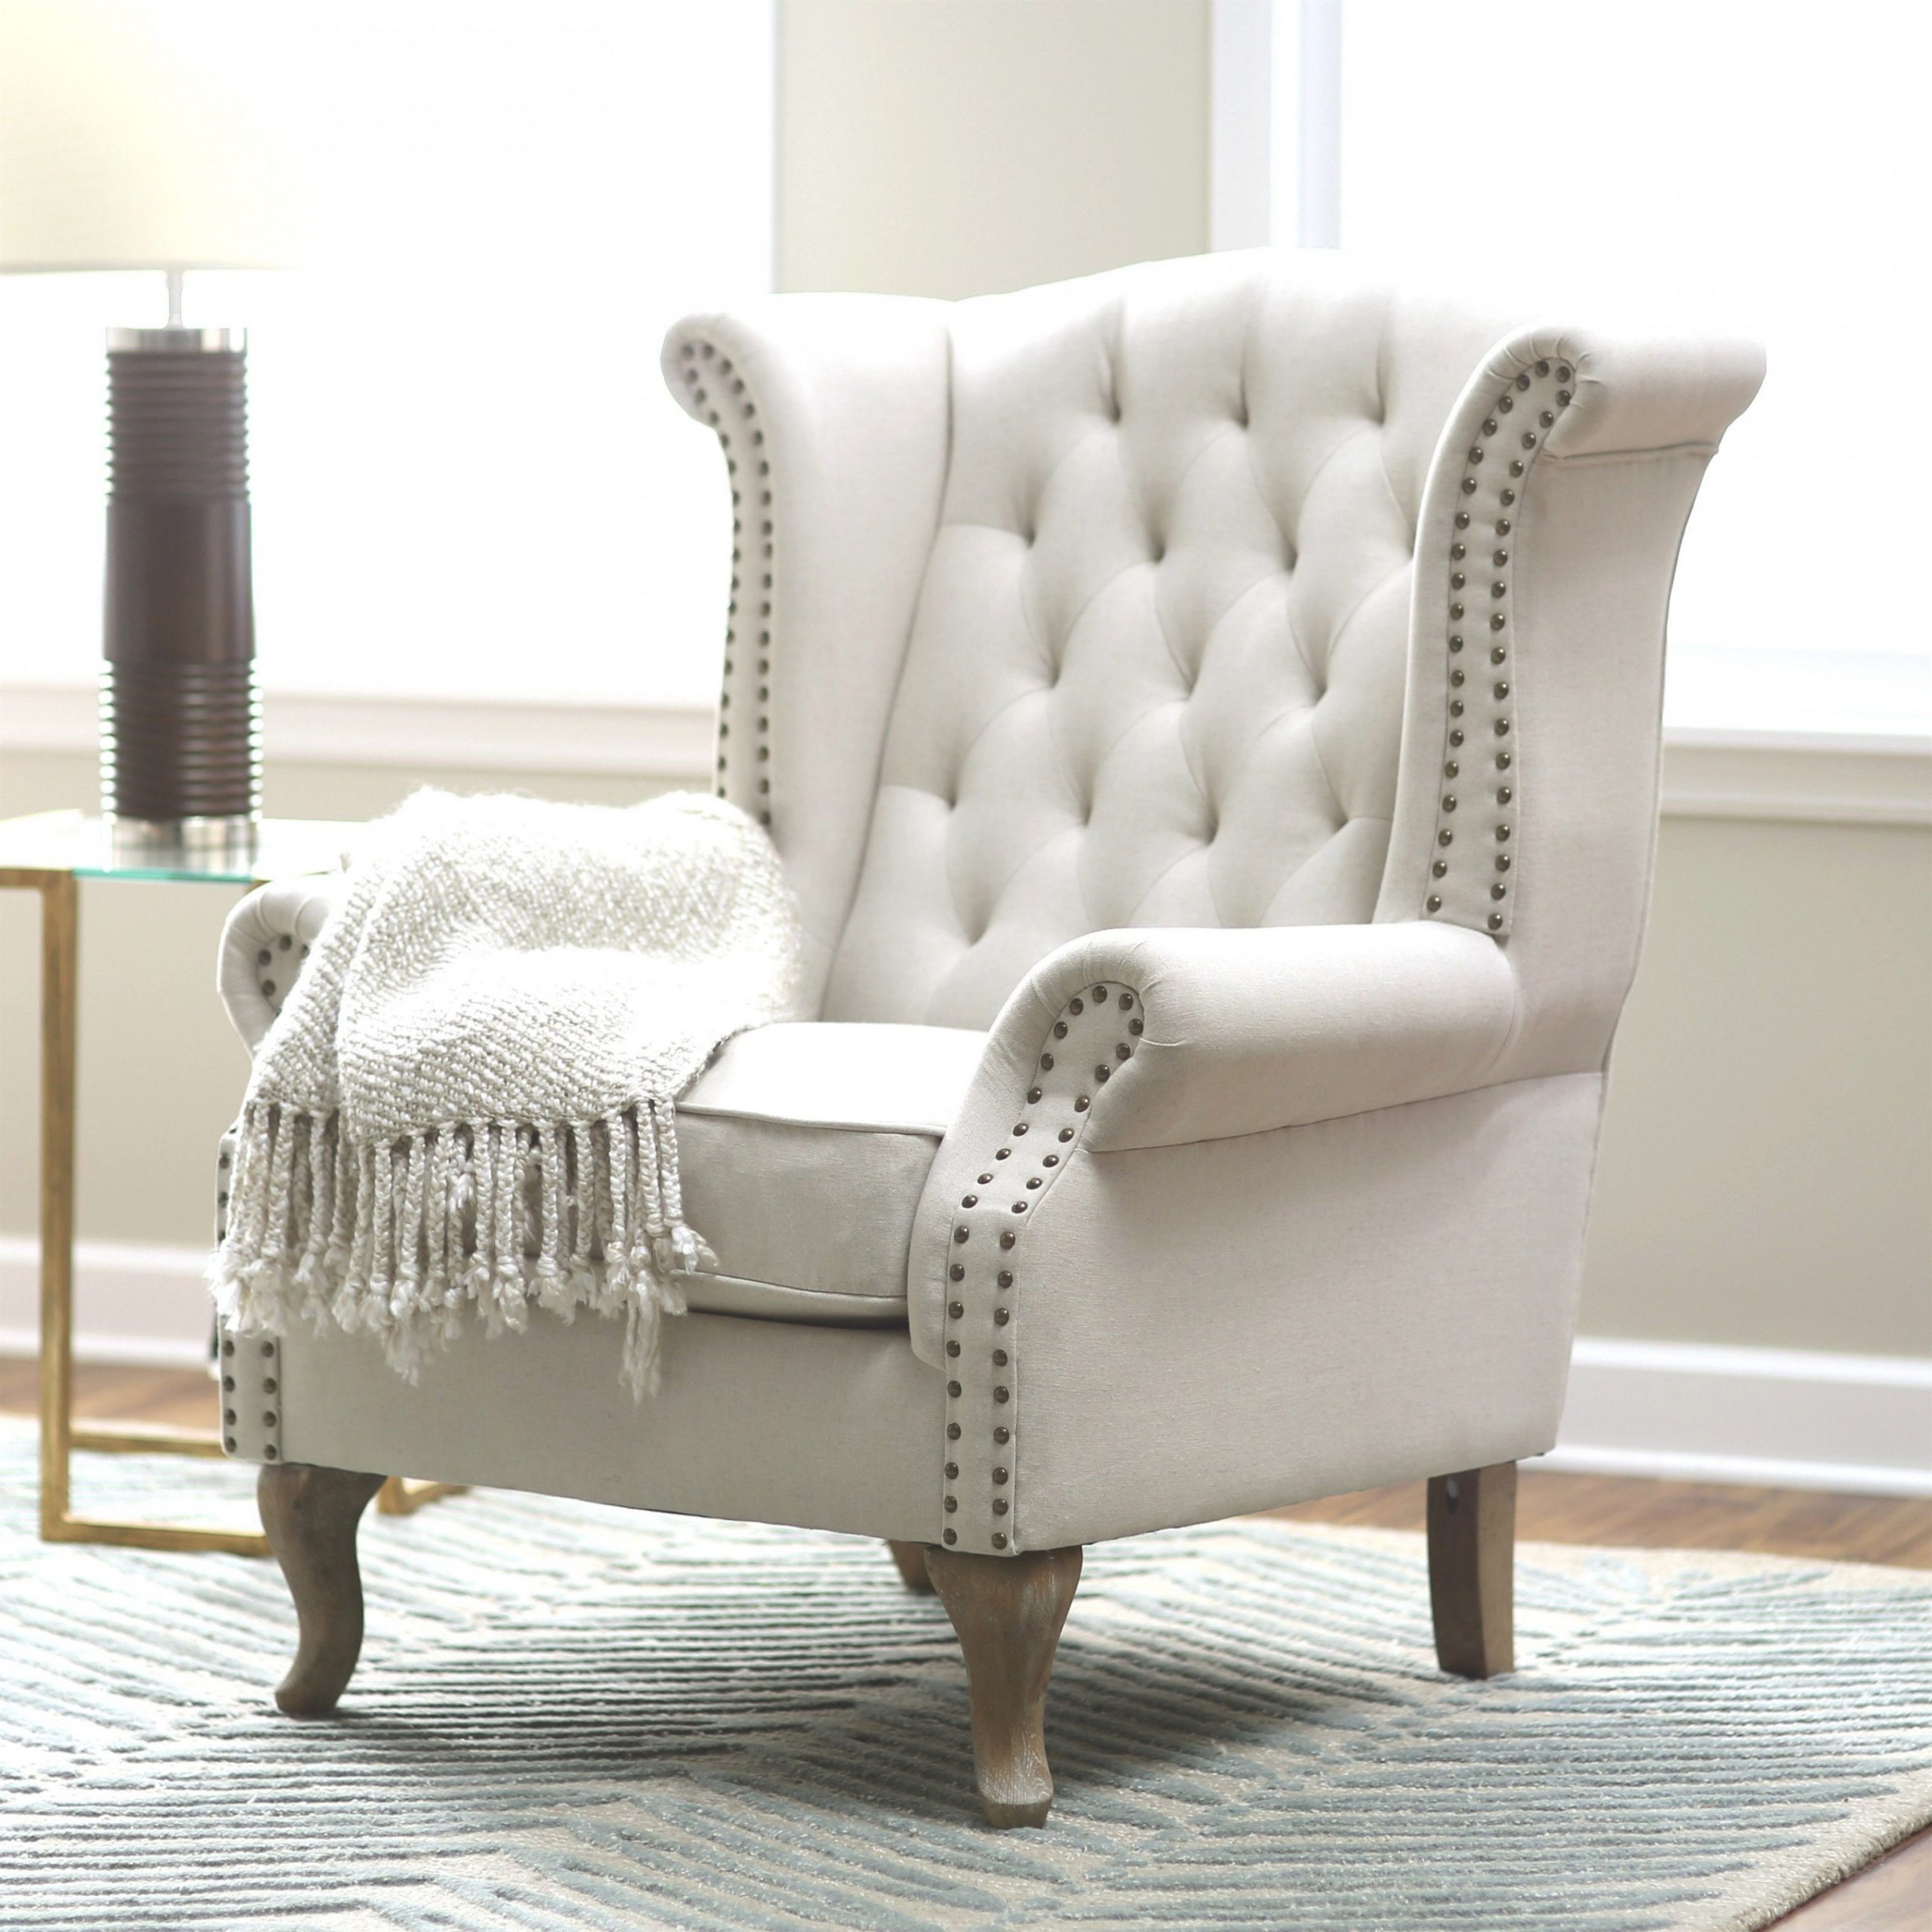 These Are The Best Living Room Chairs. Download And Save within Sitting Chairs For Living Room